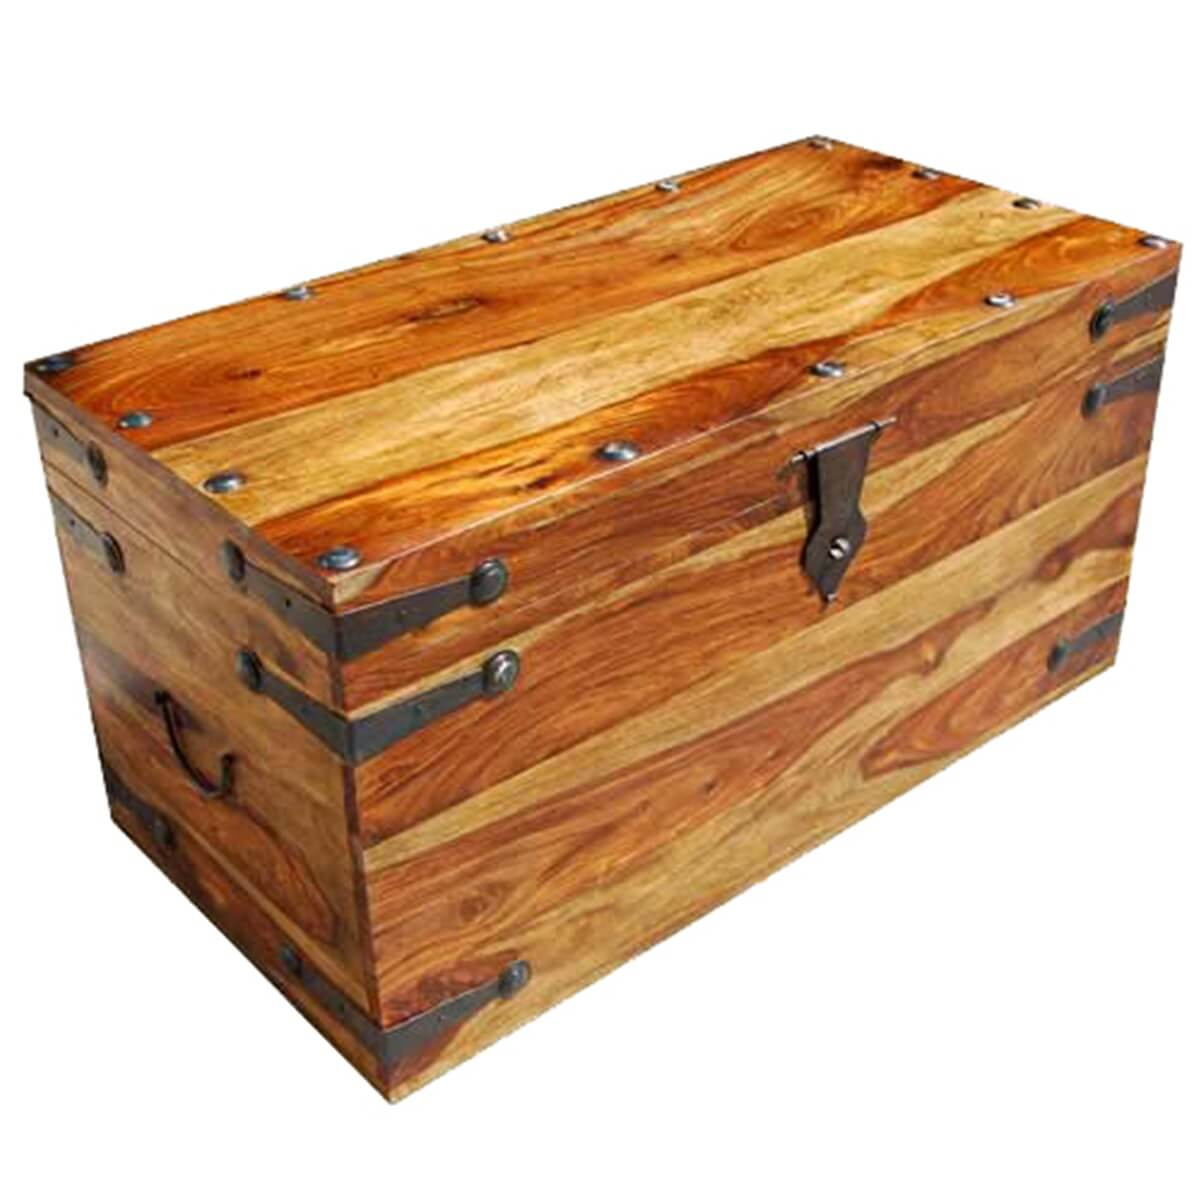 Kokanee rustic solid wood blanket storage trunk coffee table chest ebay Trunk coffee tables